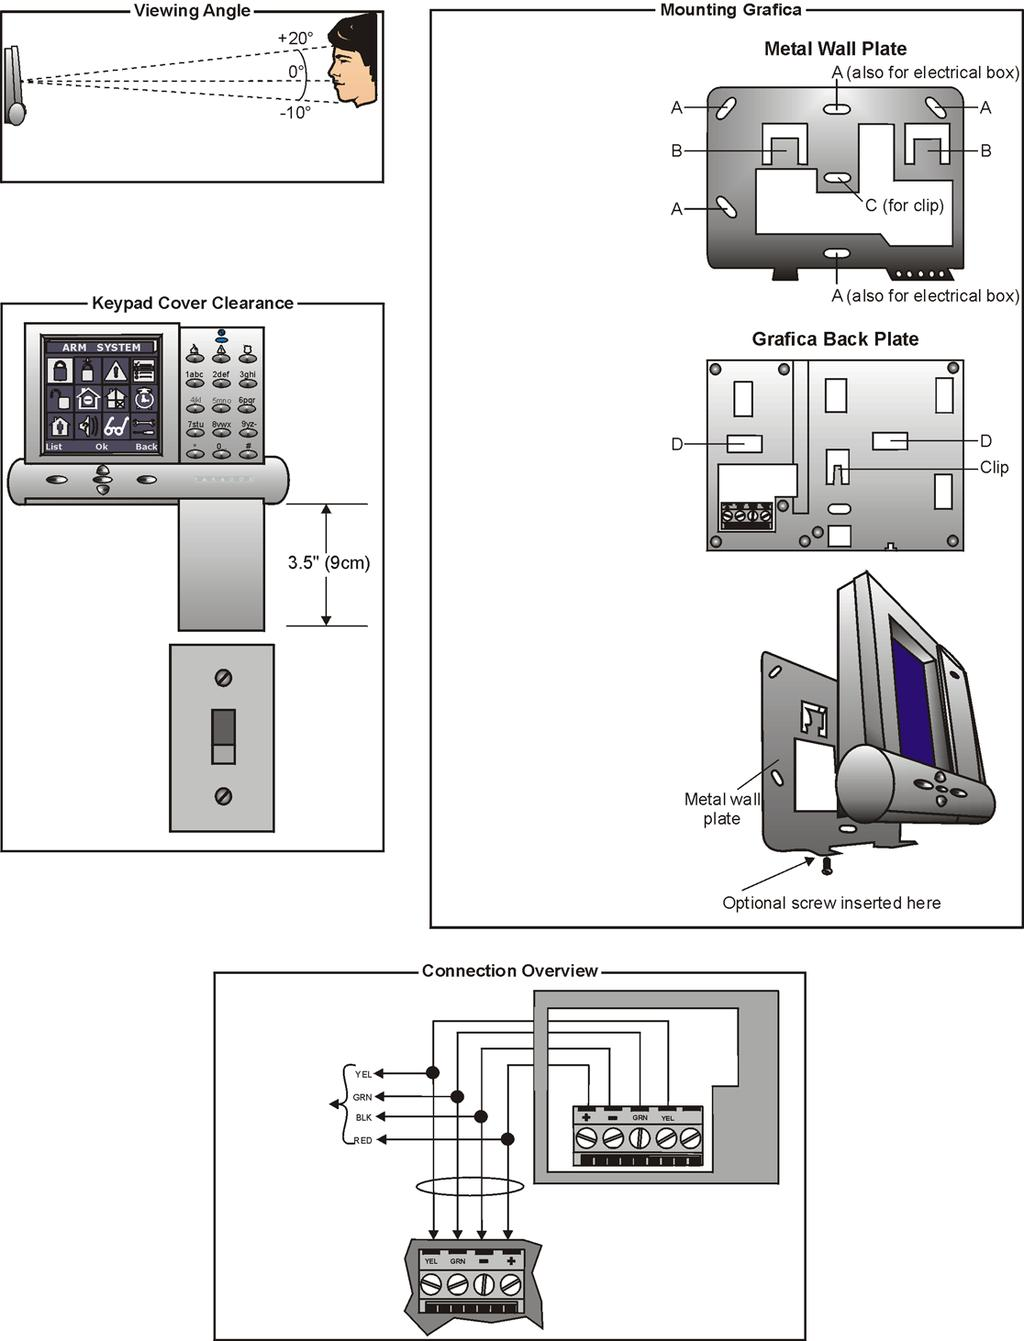 Trec Kantech Access Control Wiring Diagram Schematic Electrical System Modules Programming Guide Paradox Com Pdf